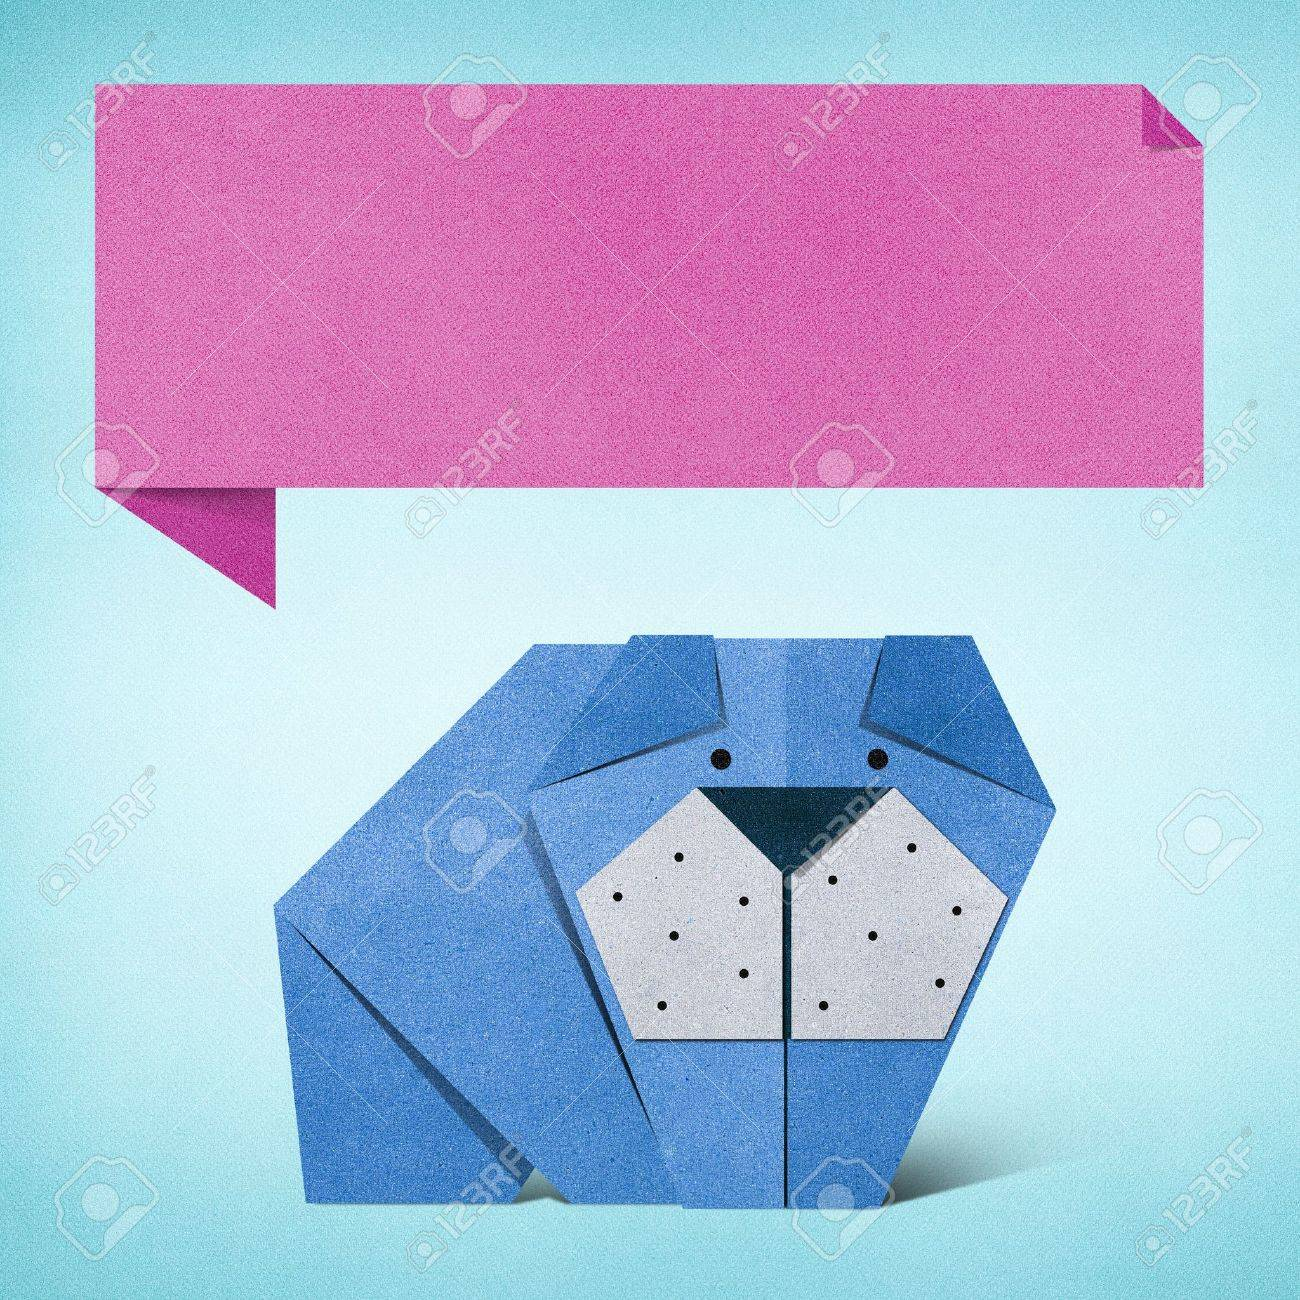 Origami dog recycled paper background - 17018313